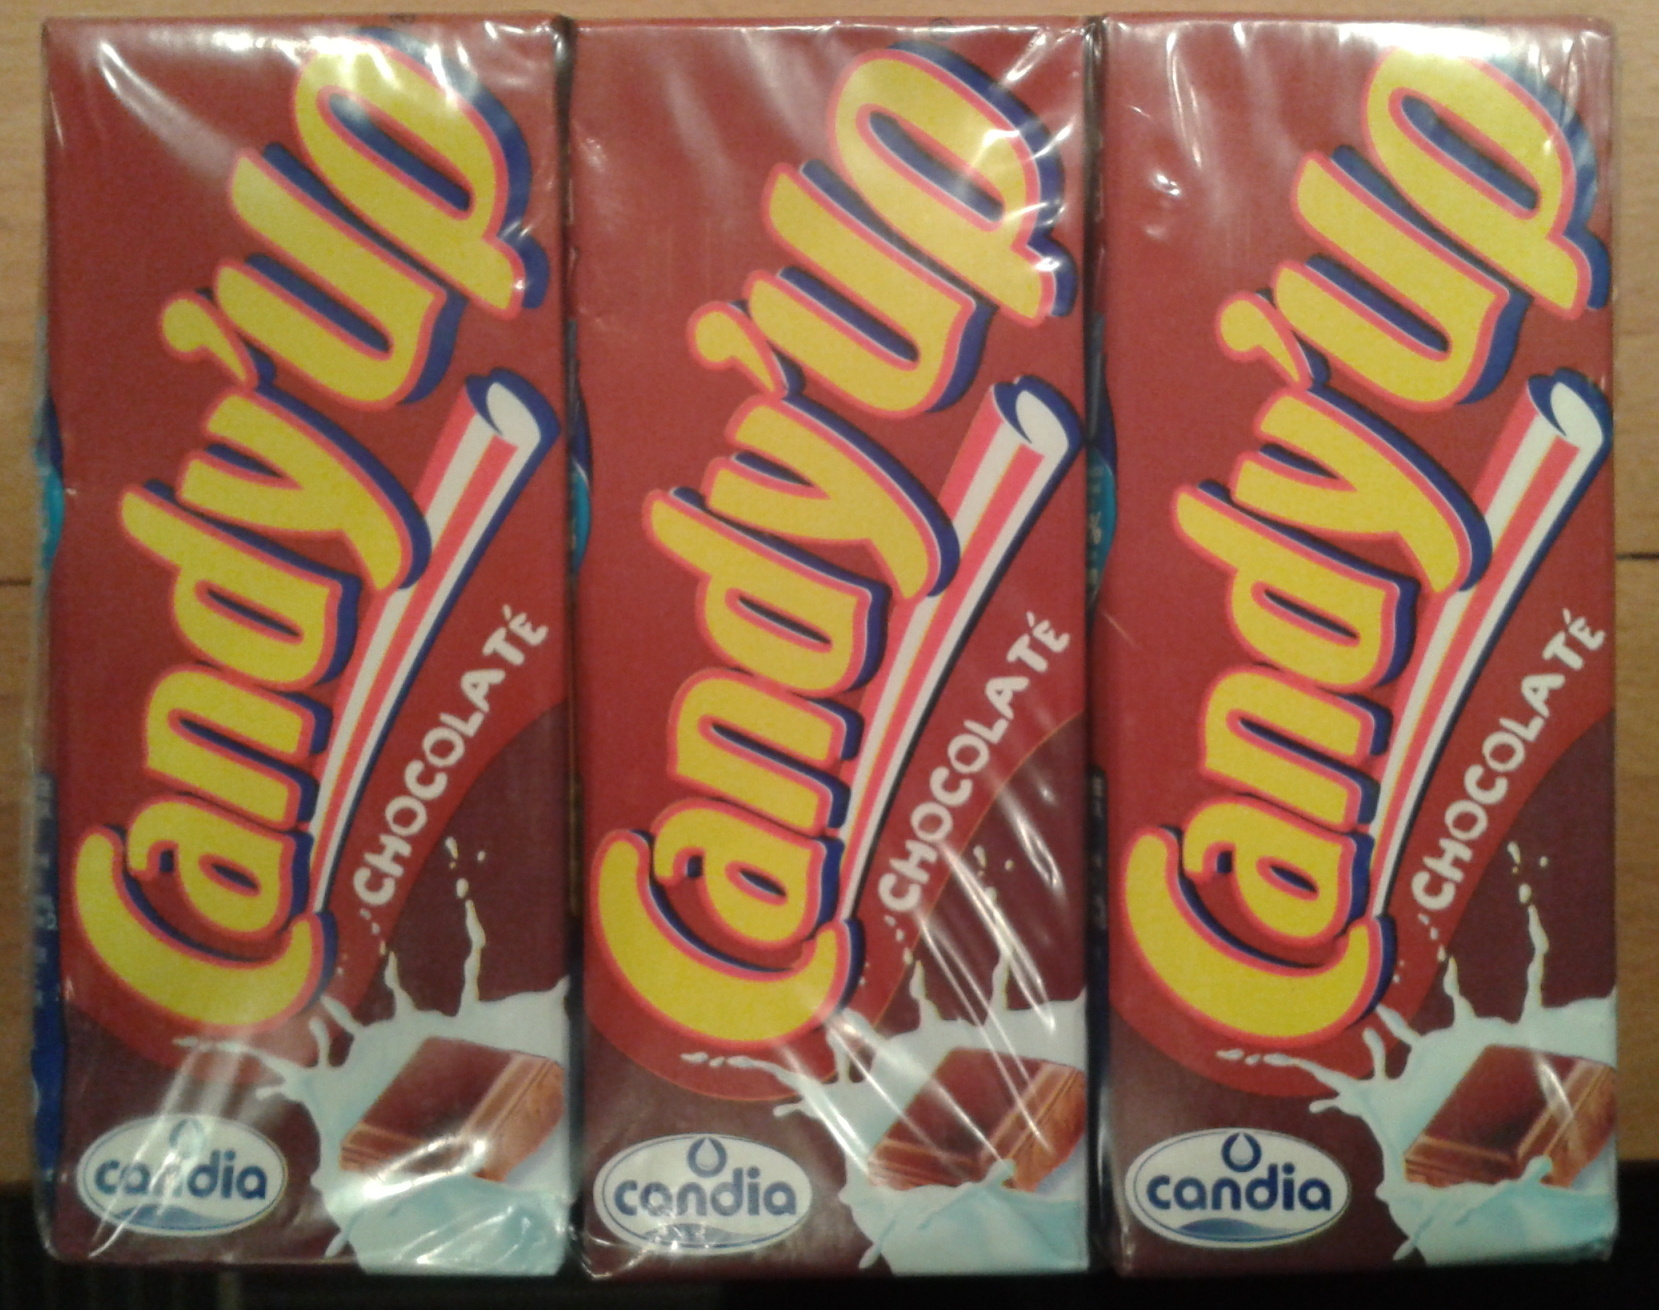 Candy'Up Chocolaté - Producto